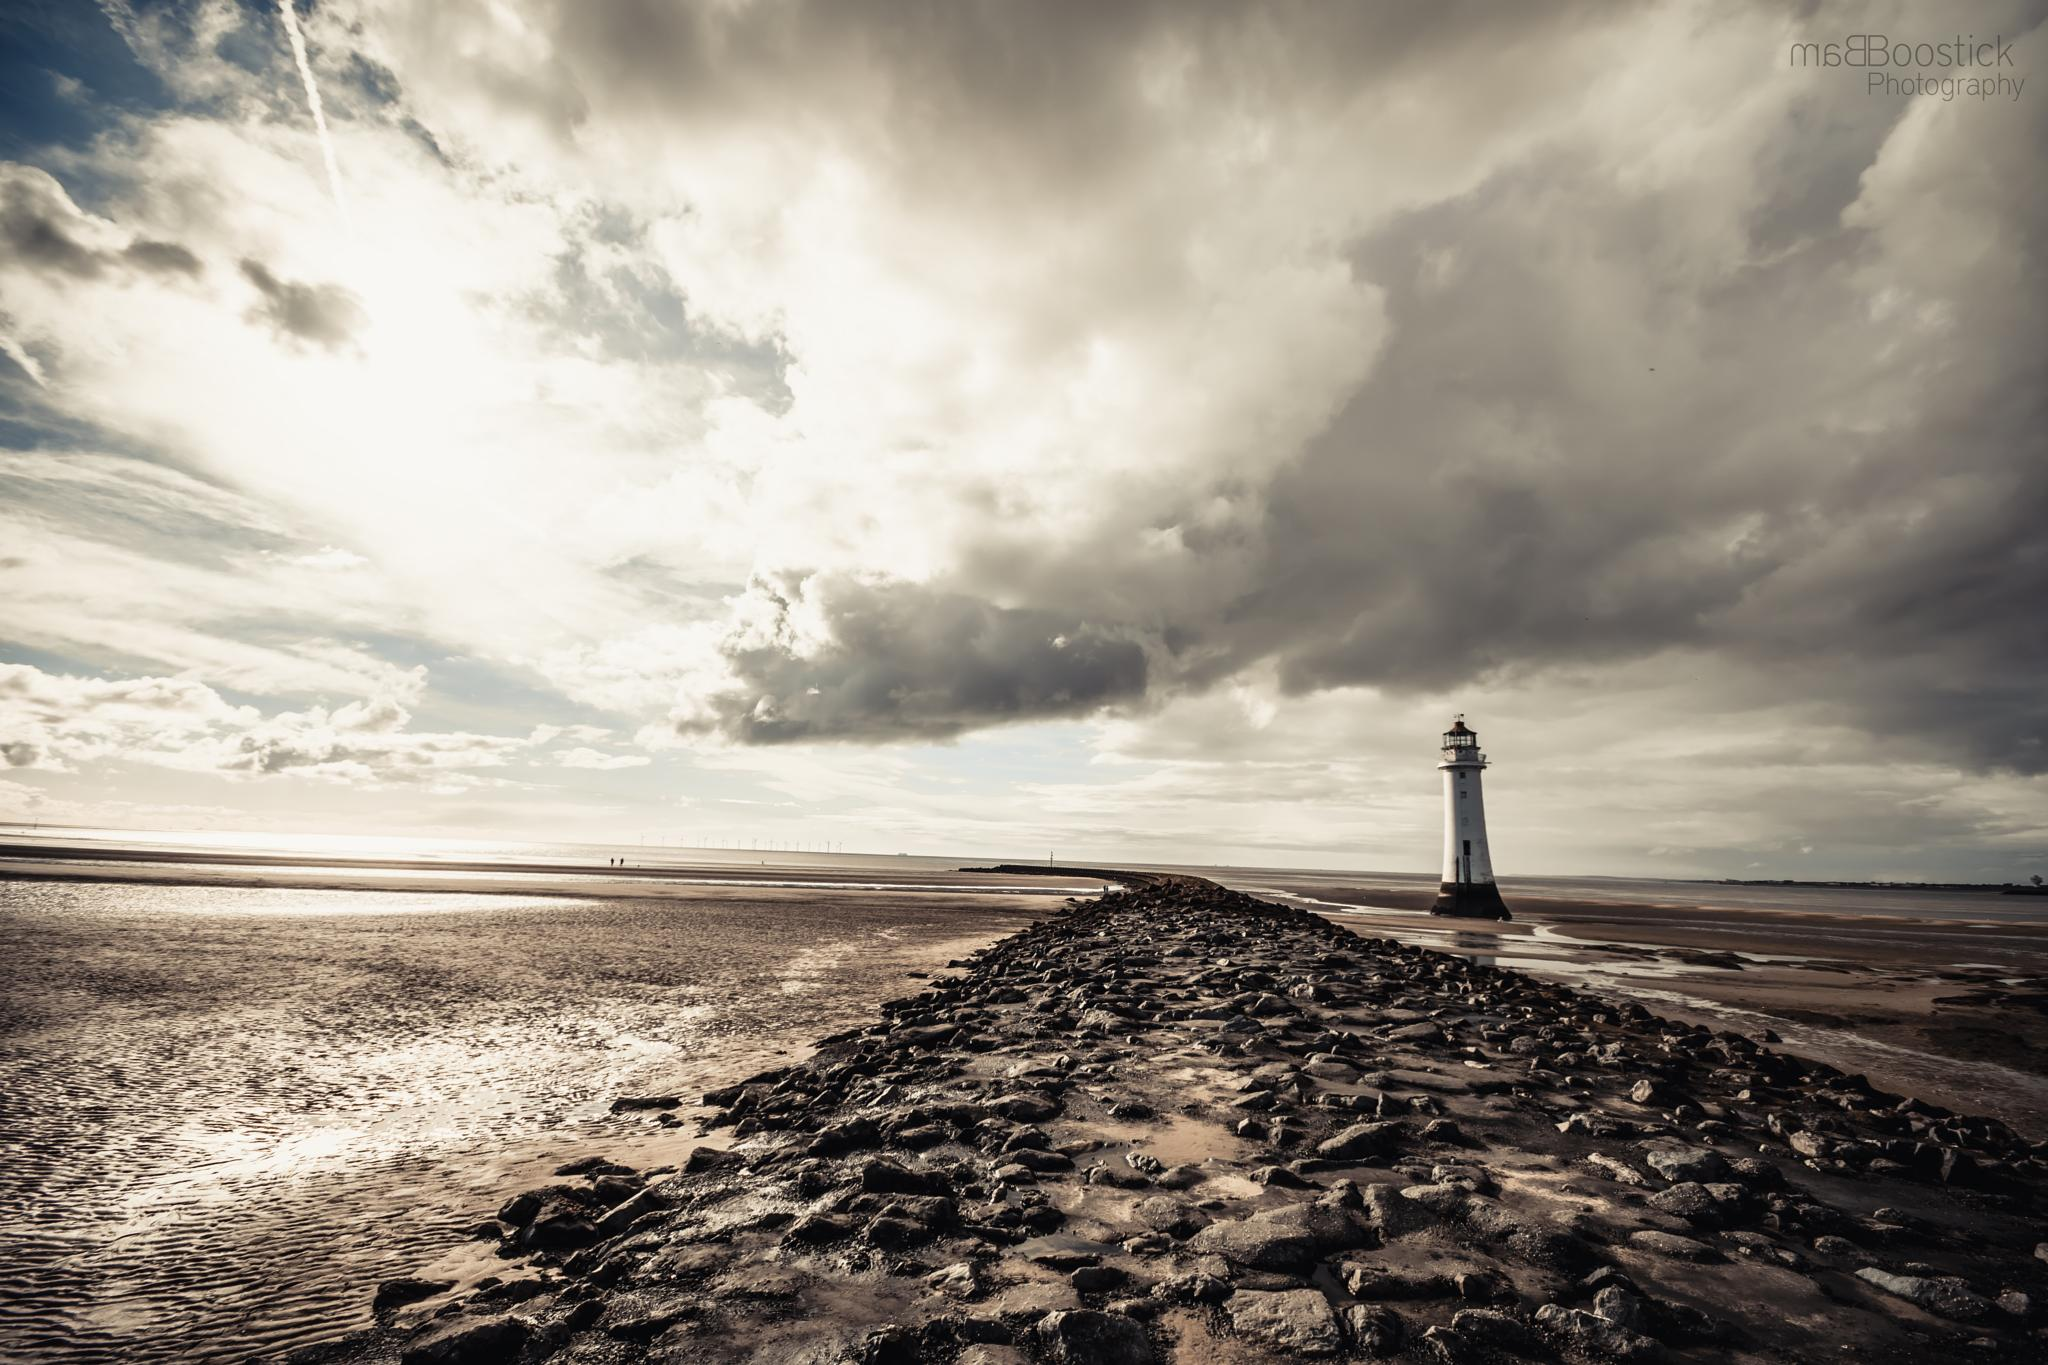 New Brighton by Bam Boostick